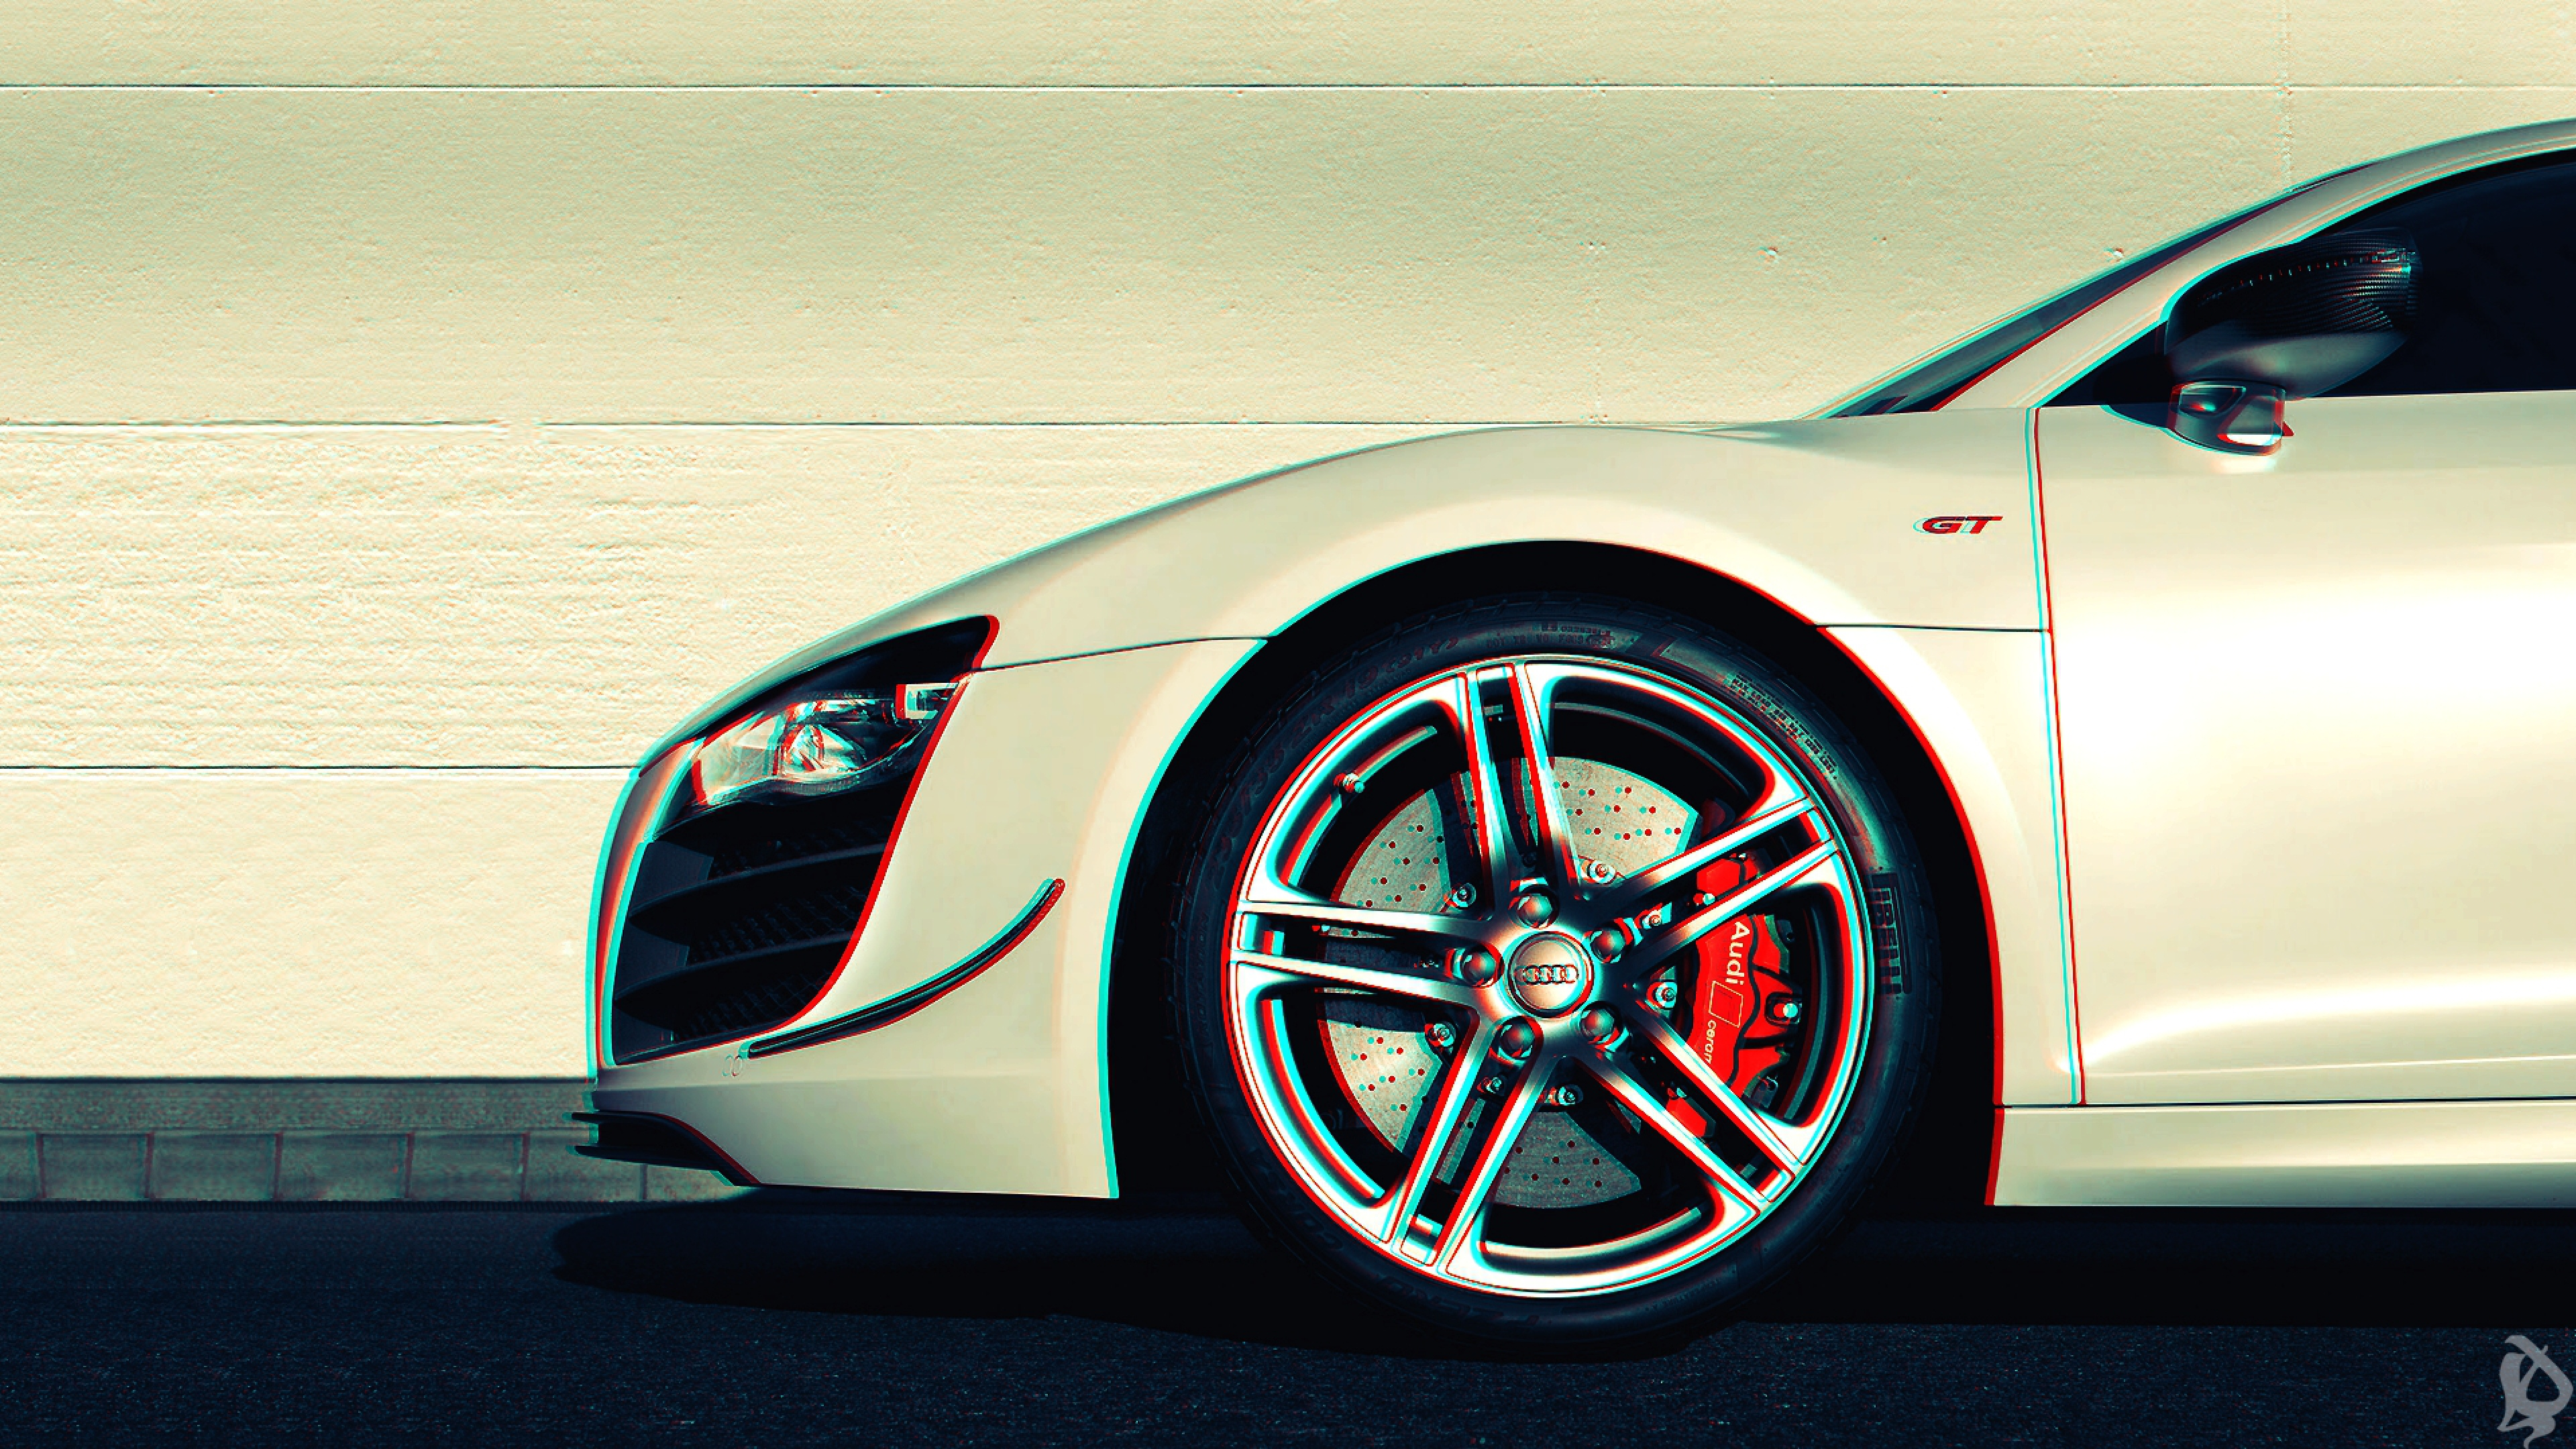 Download Wallpaper 3840x2160 Audi r8 Anaglyph 3d Car 4K Ultra HD HD 3840x2160